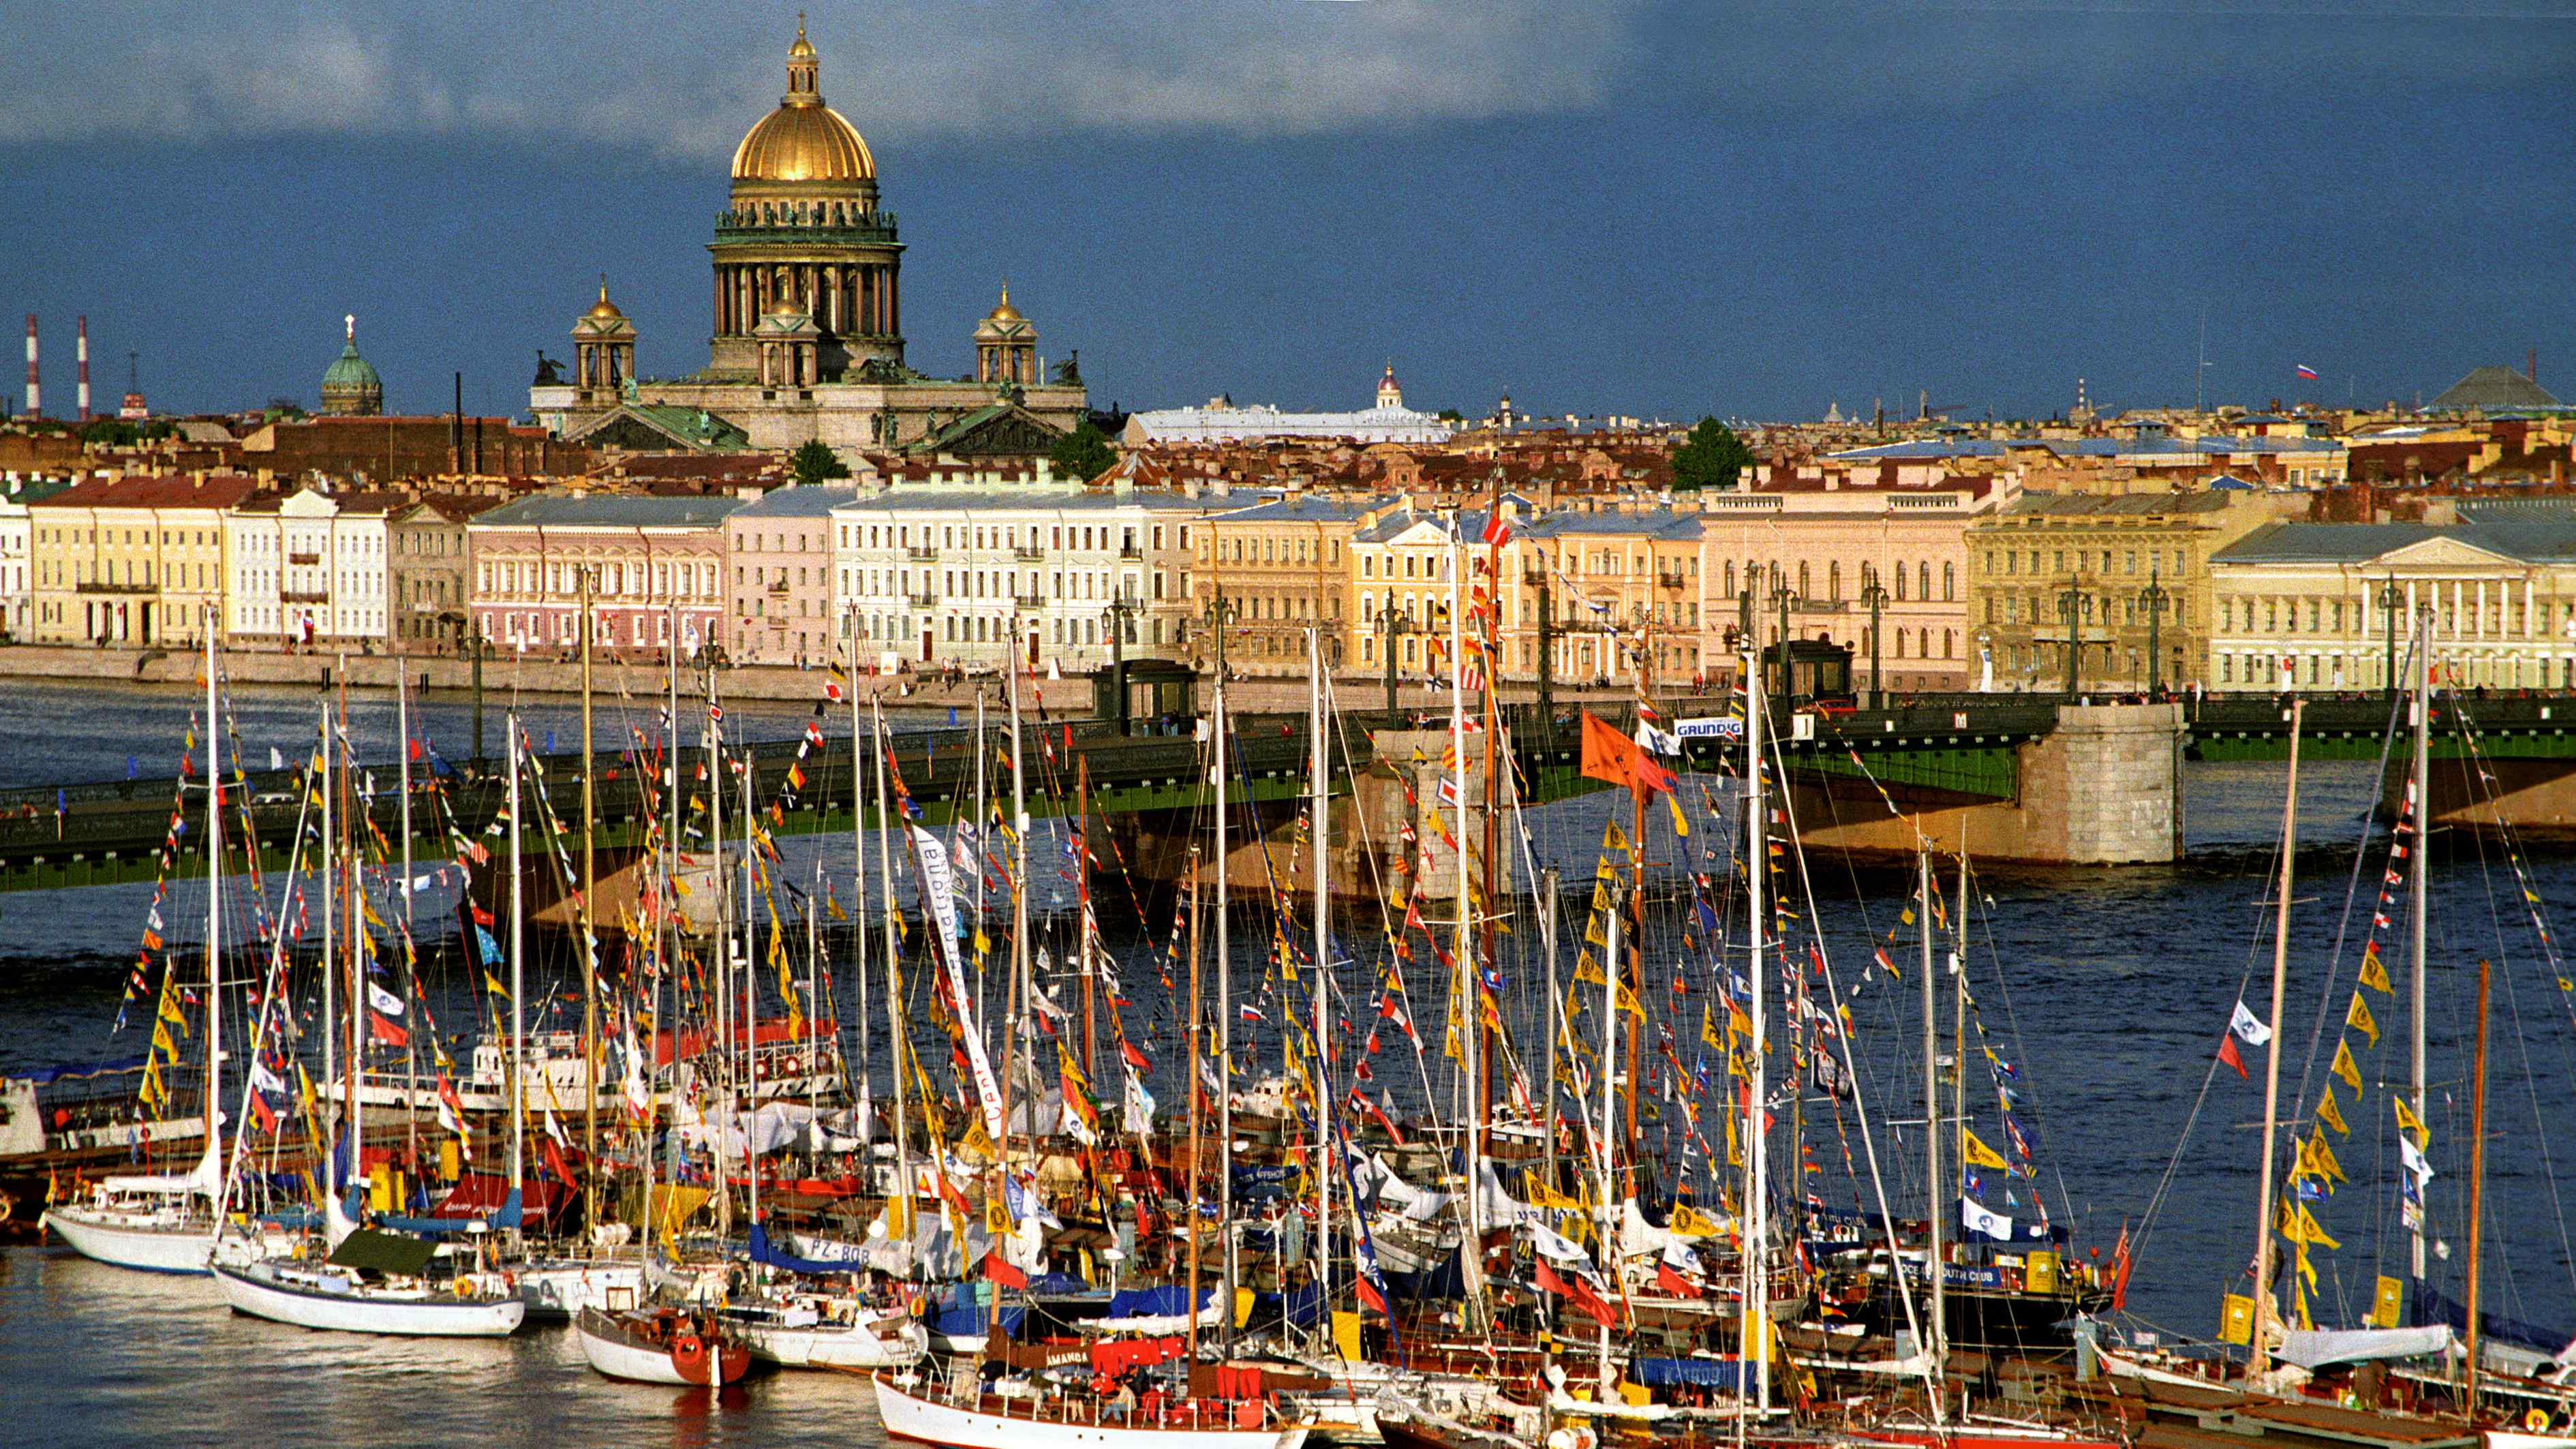 sankt-peterburg-port-corabli-rossija